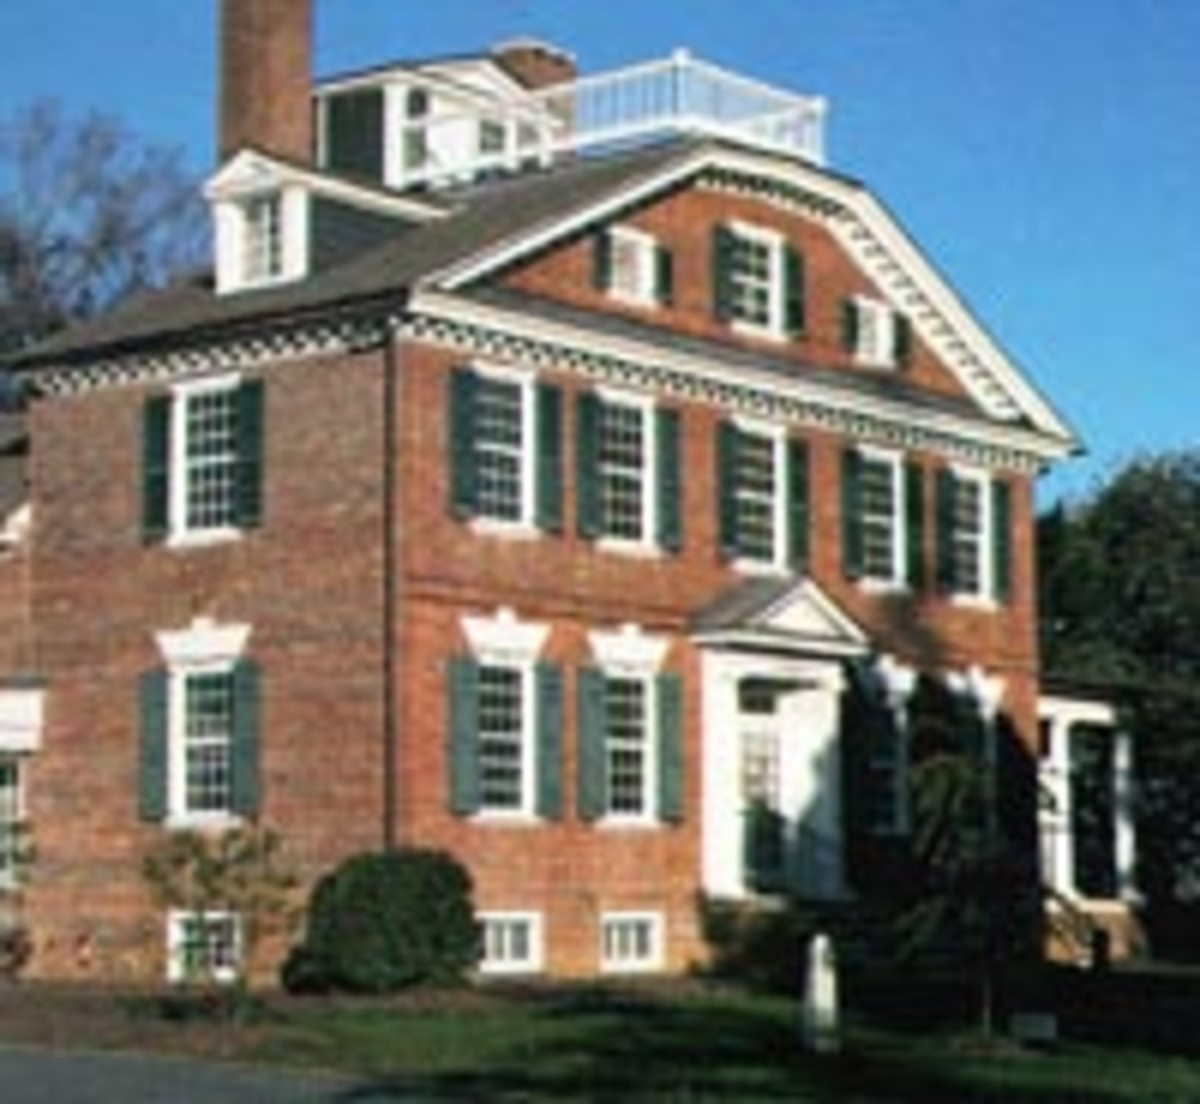 Belmont Hall in Smyrna, DE